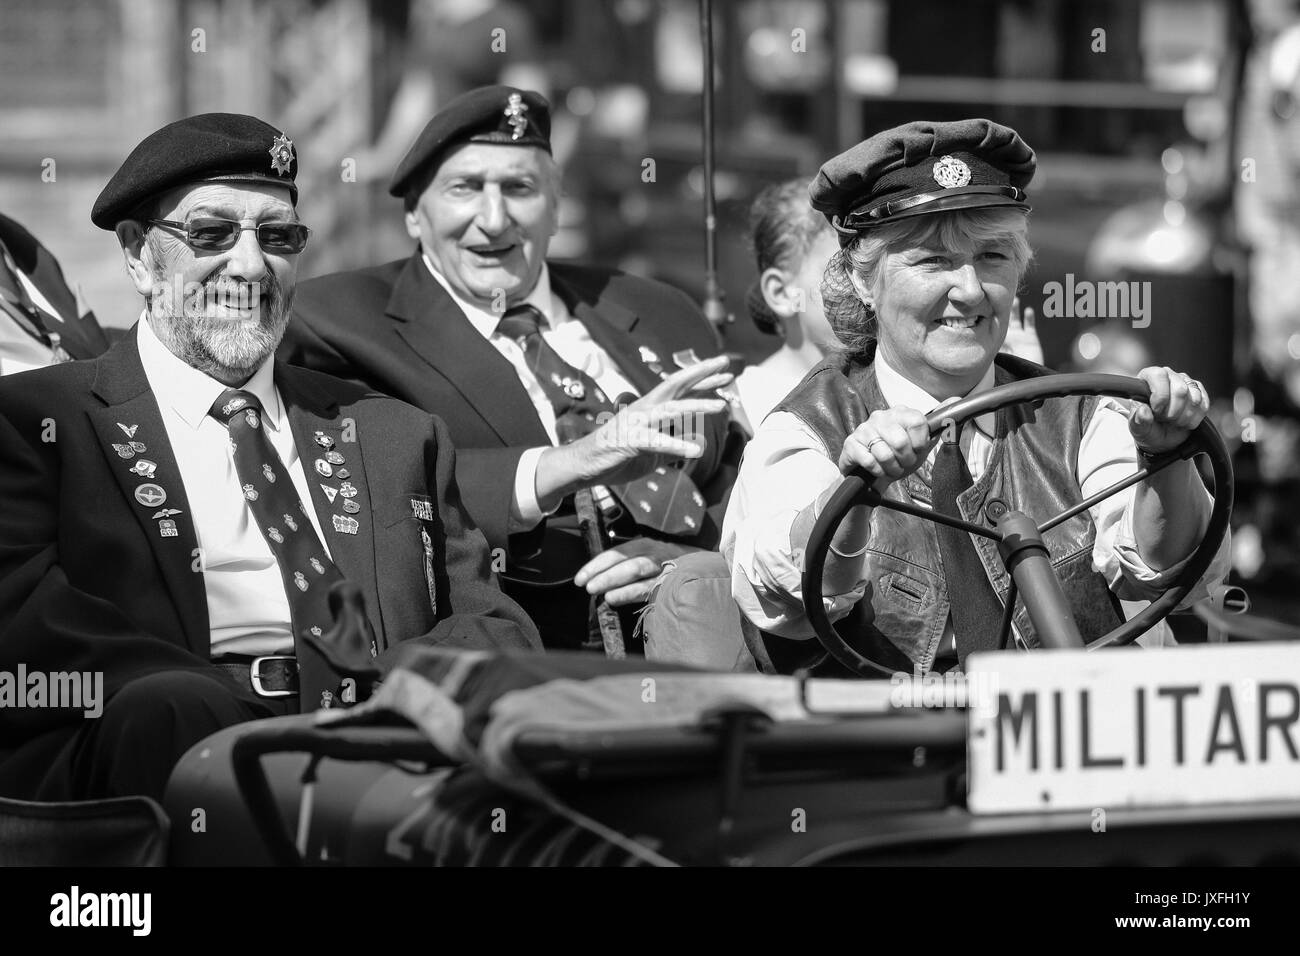 1940s Event, National Tramway Museum, Crich, August 2017 - Stock Image